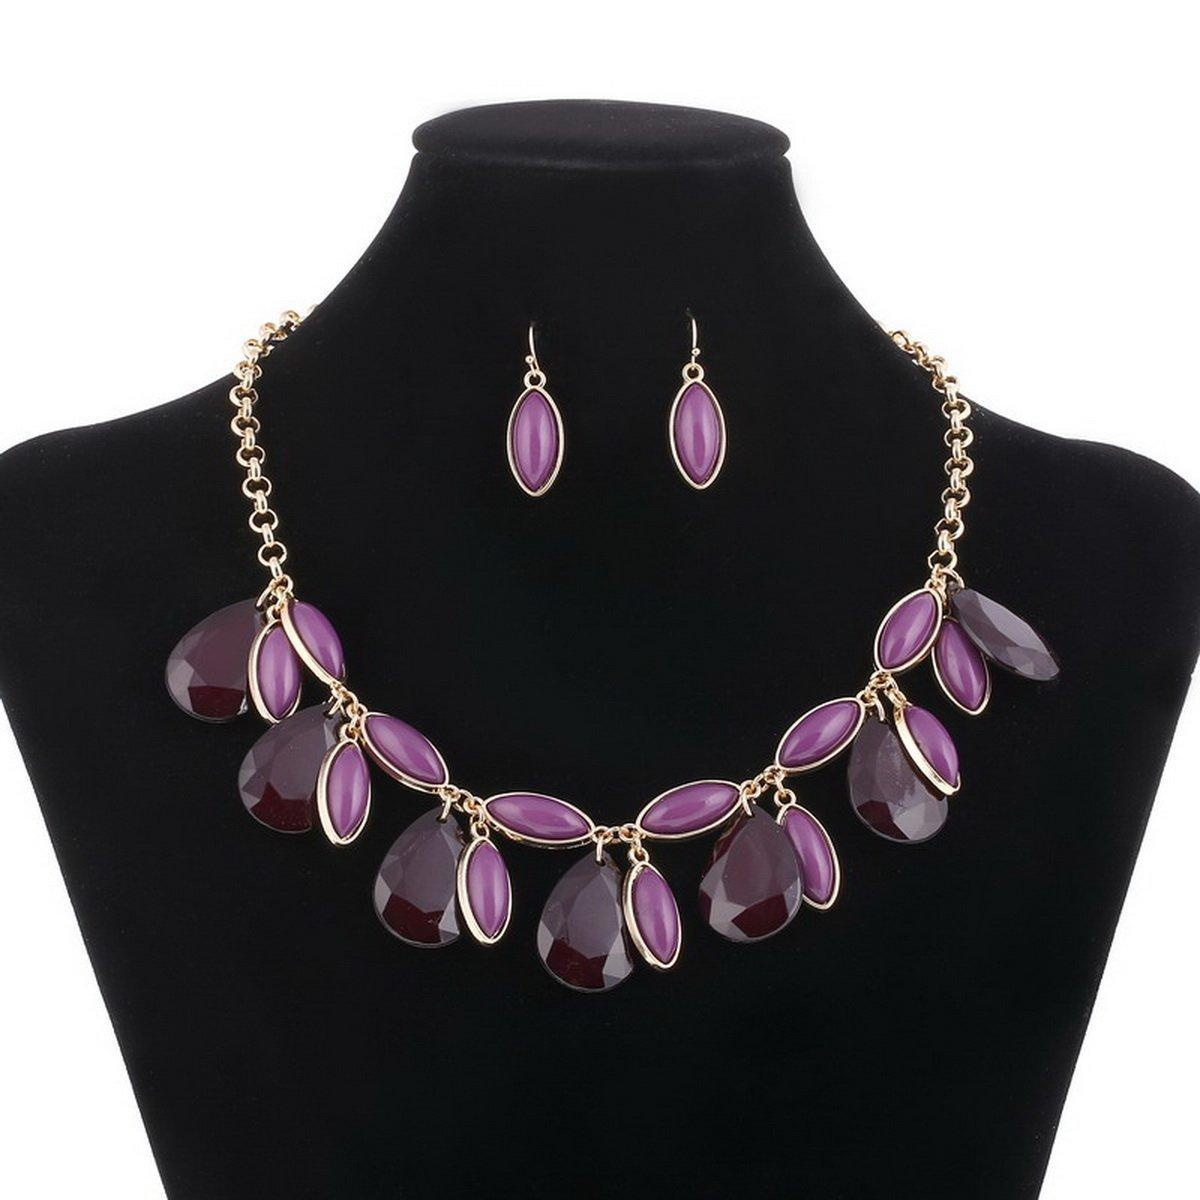 ARICO Statement Multi Layered Necklace Set Earrings Parure Bijoux Femme Jewellery Gold Plated Jewelry Set NB613